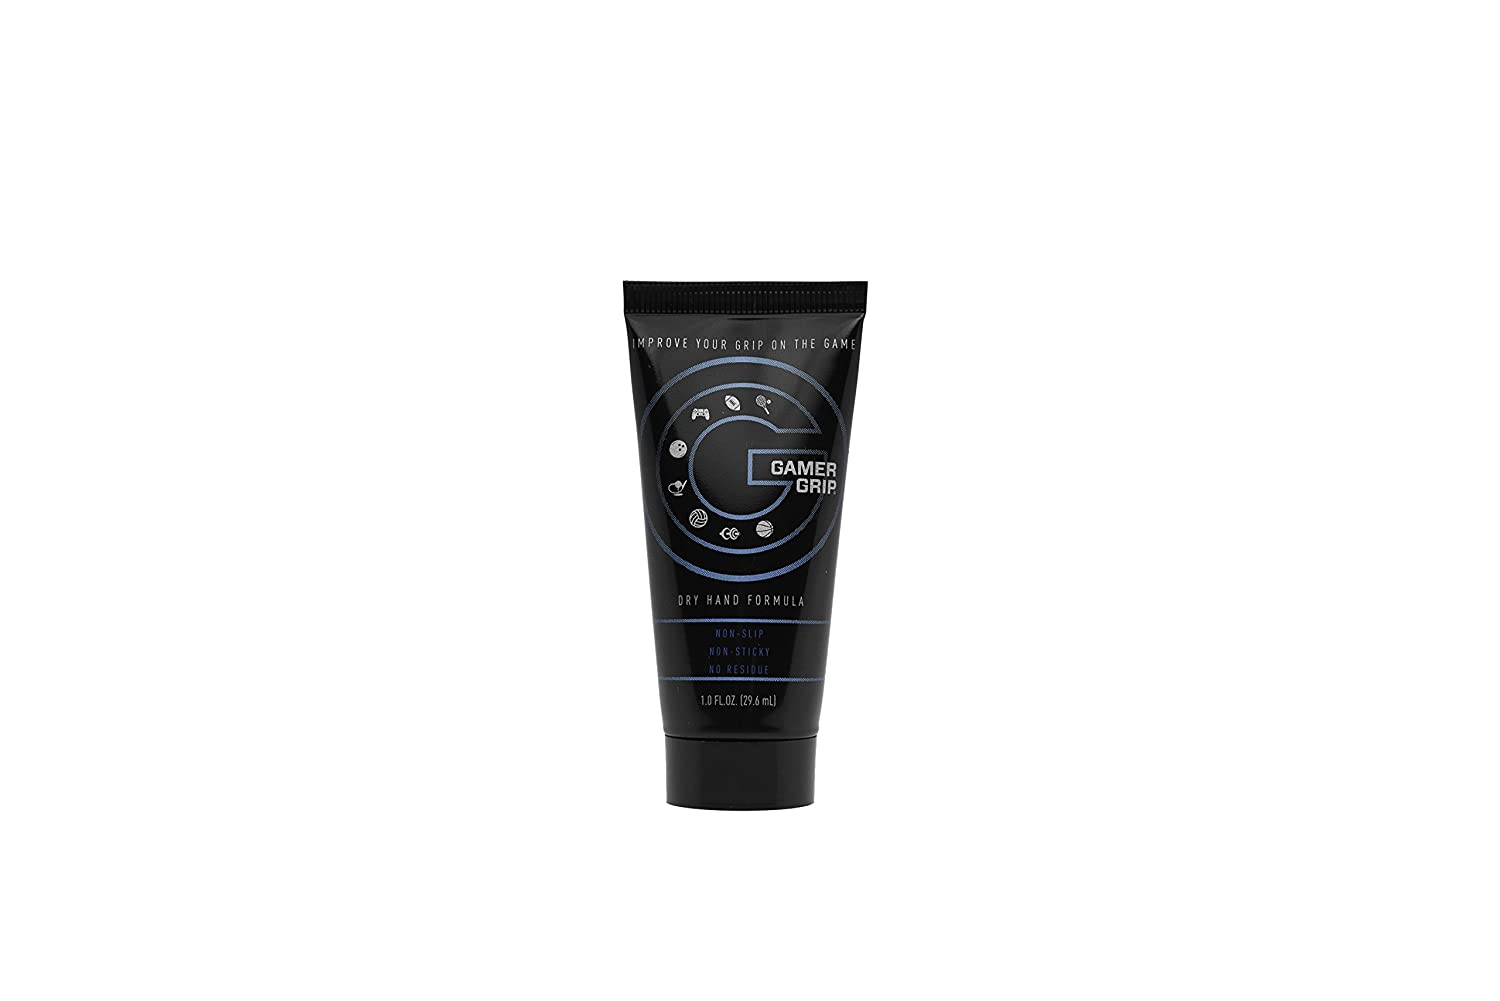 GamerGrip Total Grip Solution Stops Sweat On Hands for up To 4 Hours for all Sporting and Gaming Activities